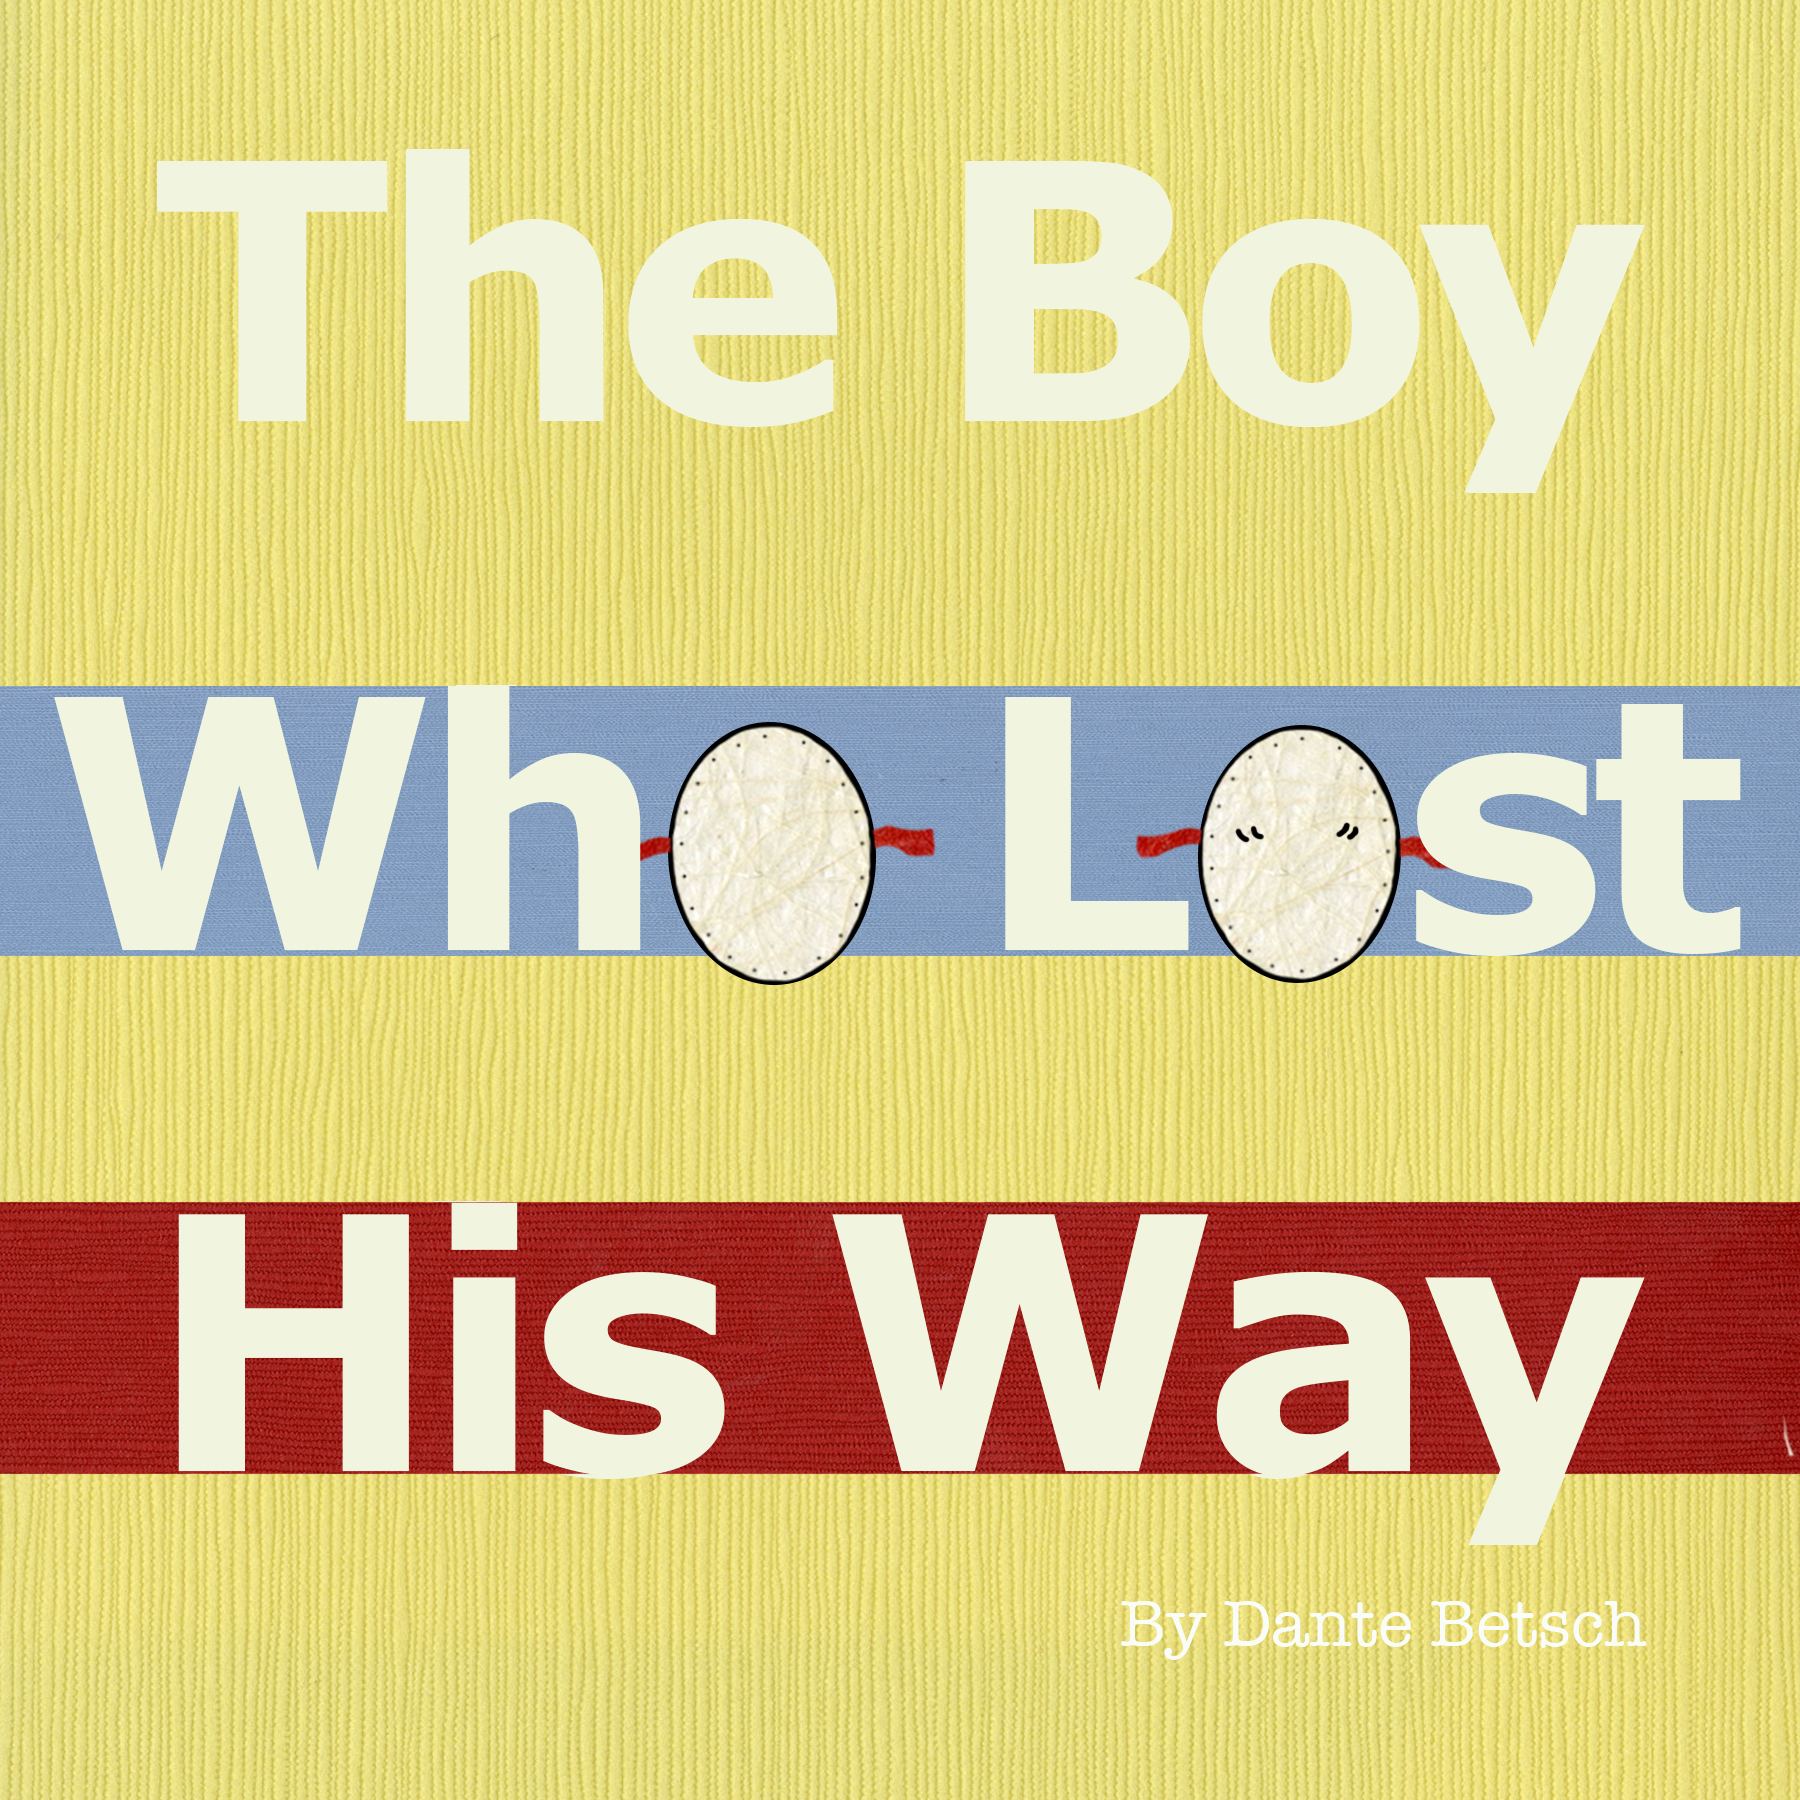 Boywholosthisway Cover-1.jpg